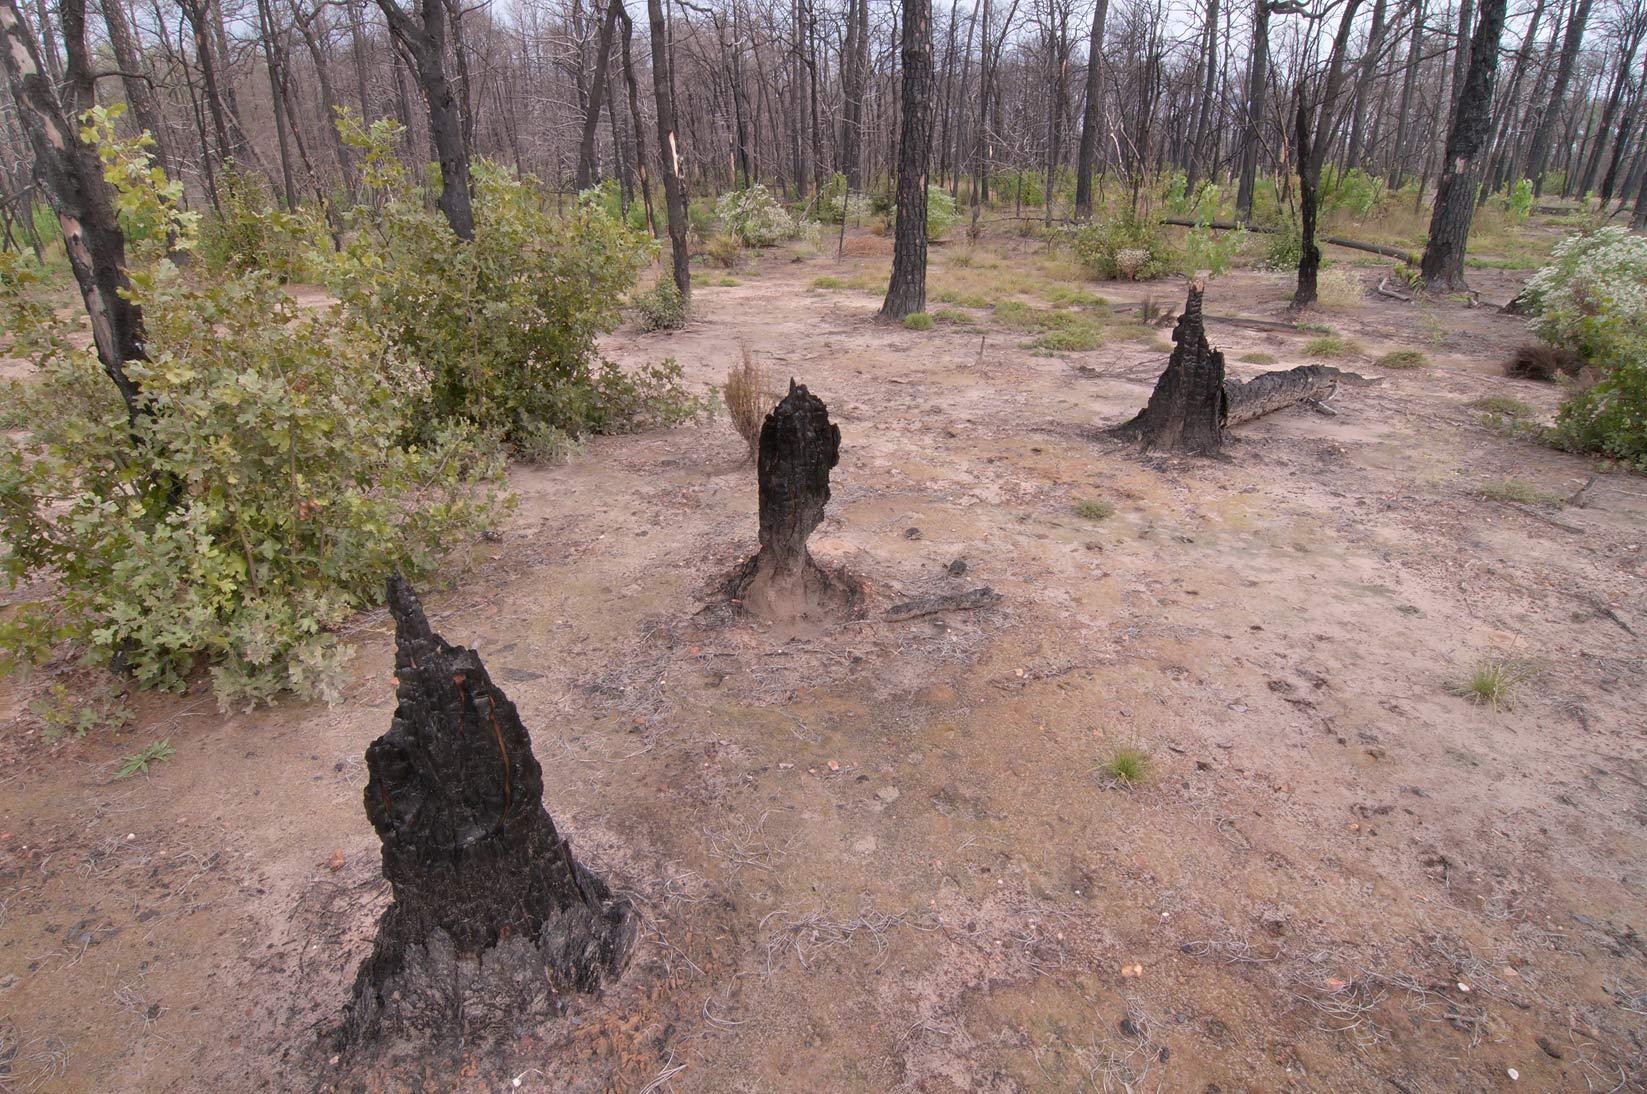 Tree stumps in Bastrop State Park. Bastrop, Texas